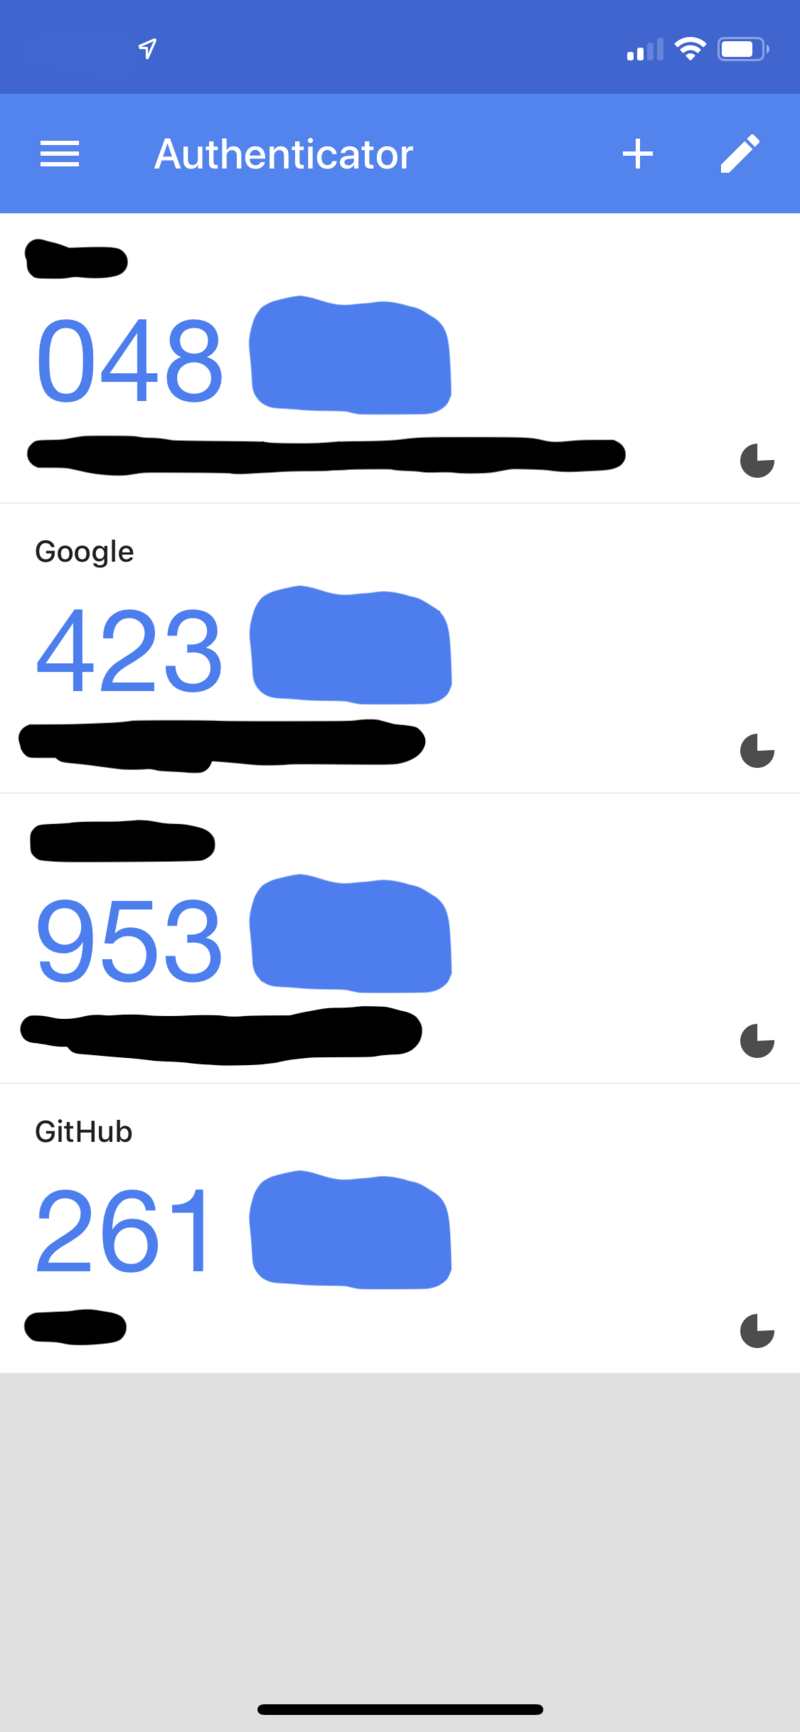 Picture of the Google Authenticator app on a mobile phone displaying the first 3 numbers of several OTPs. A timer for each OTP indicates the usage of OATH-TOTP.